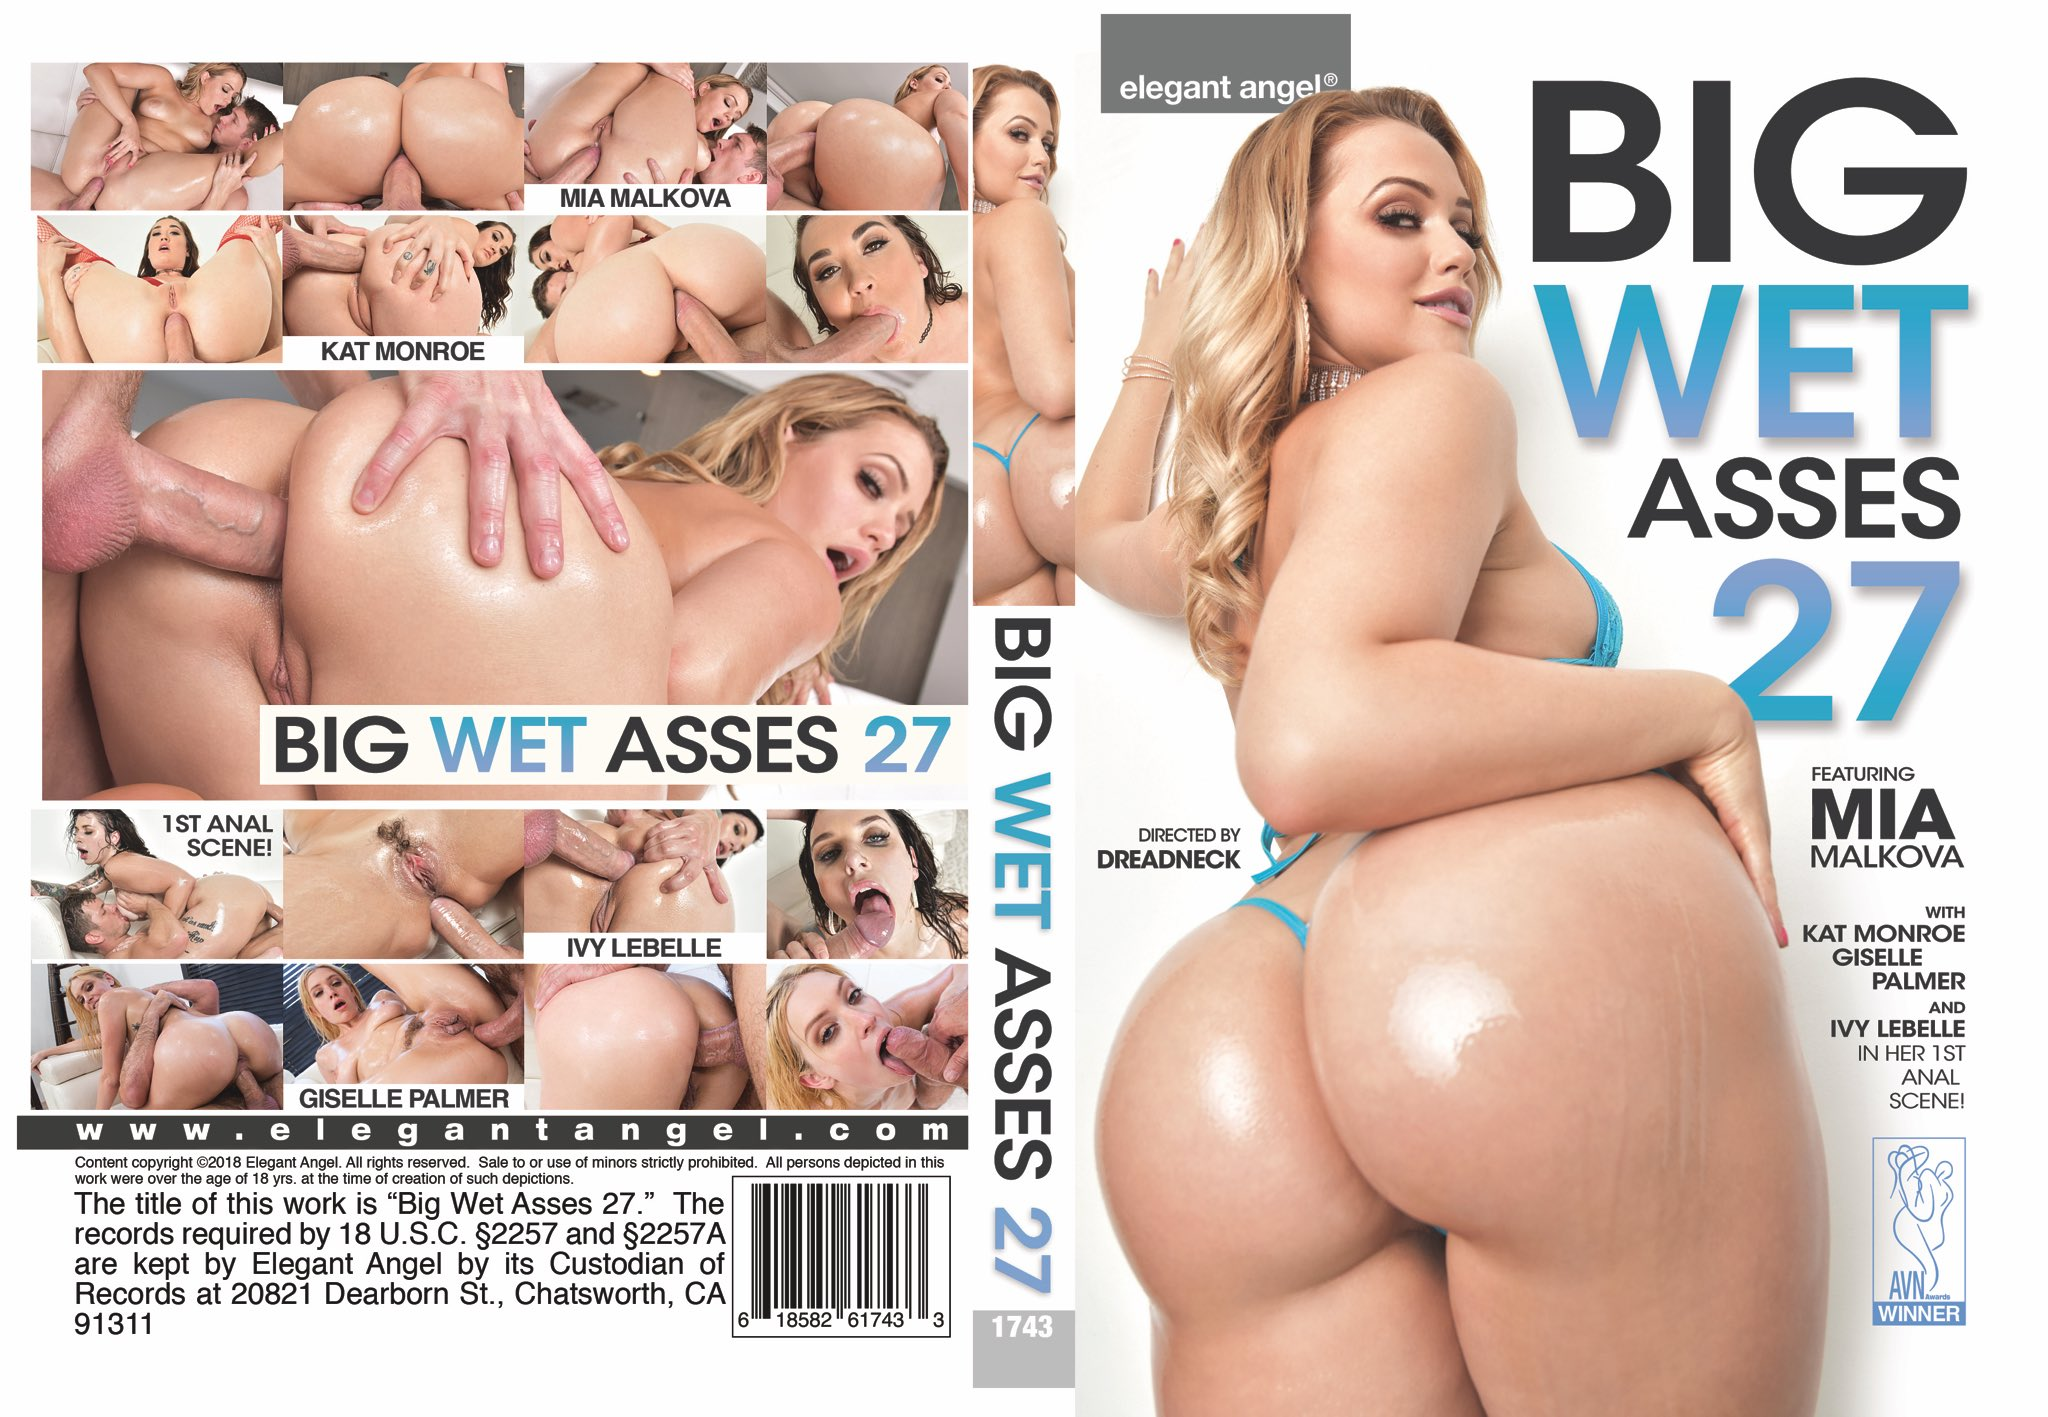 Elegant Angel On Twitter Big Wet Asses 27 Is Out March 26th With Miamalkova Gisellexpalmer Katmonroexxx And The First Filmed Anal Scene Of